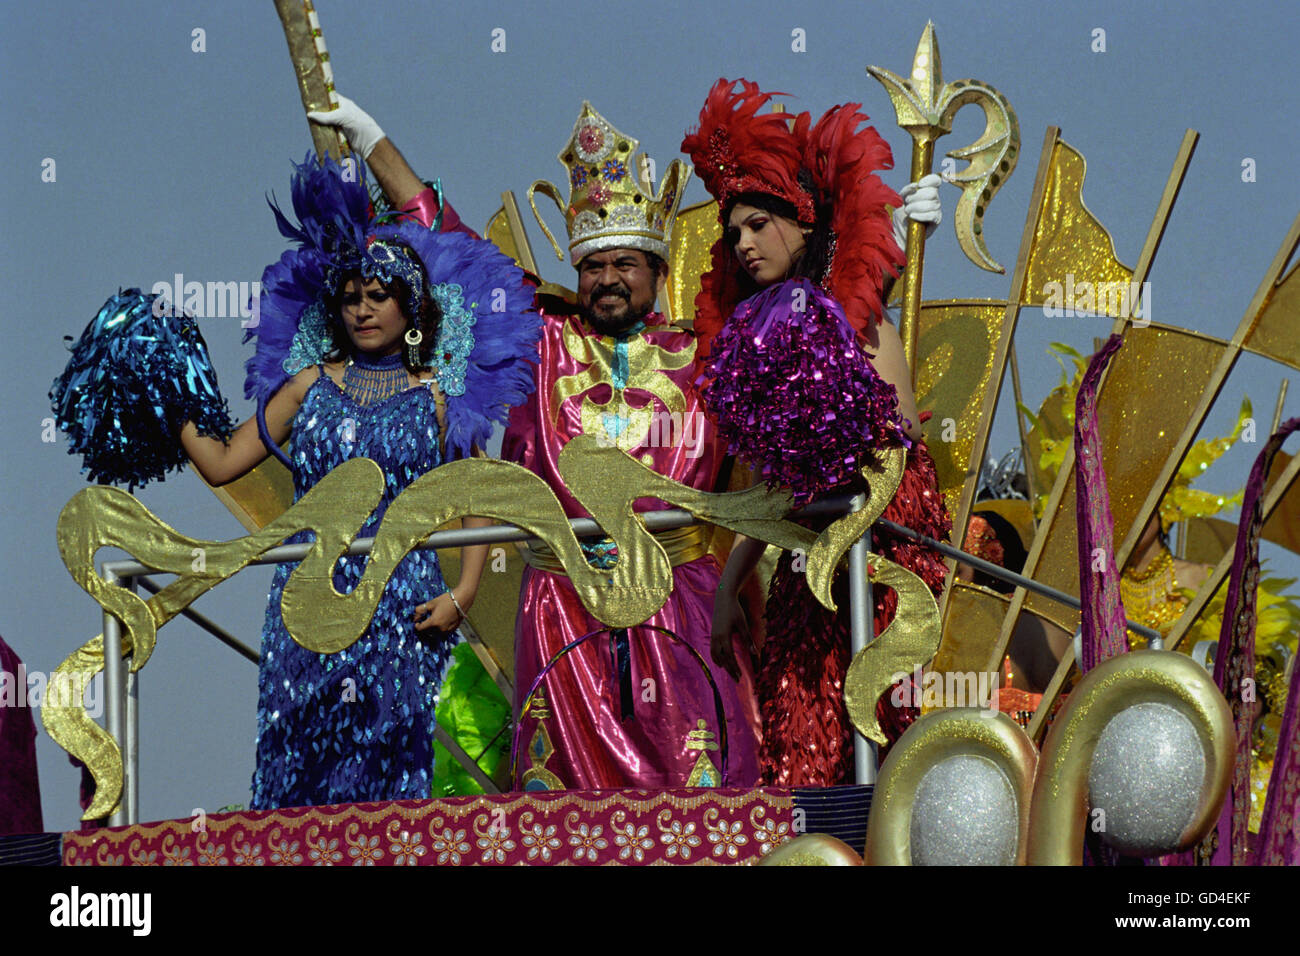 Artistes performing during the carnival - Stock Image